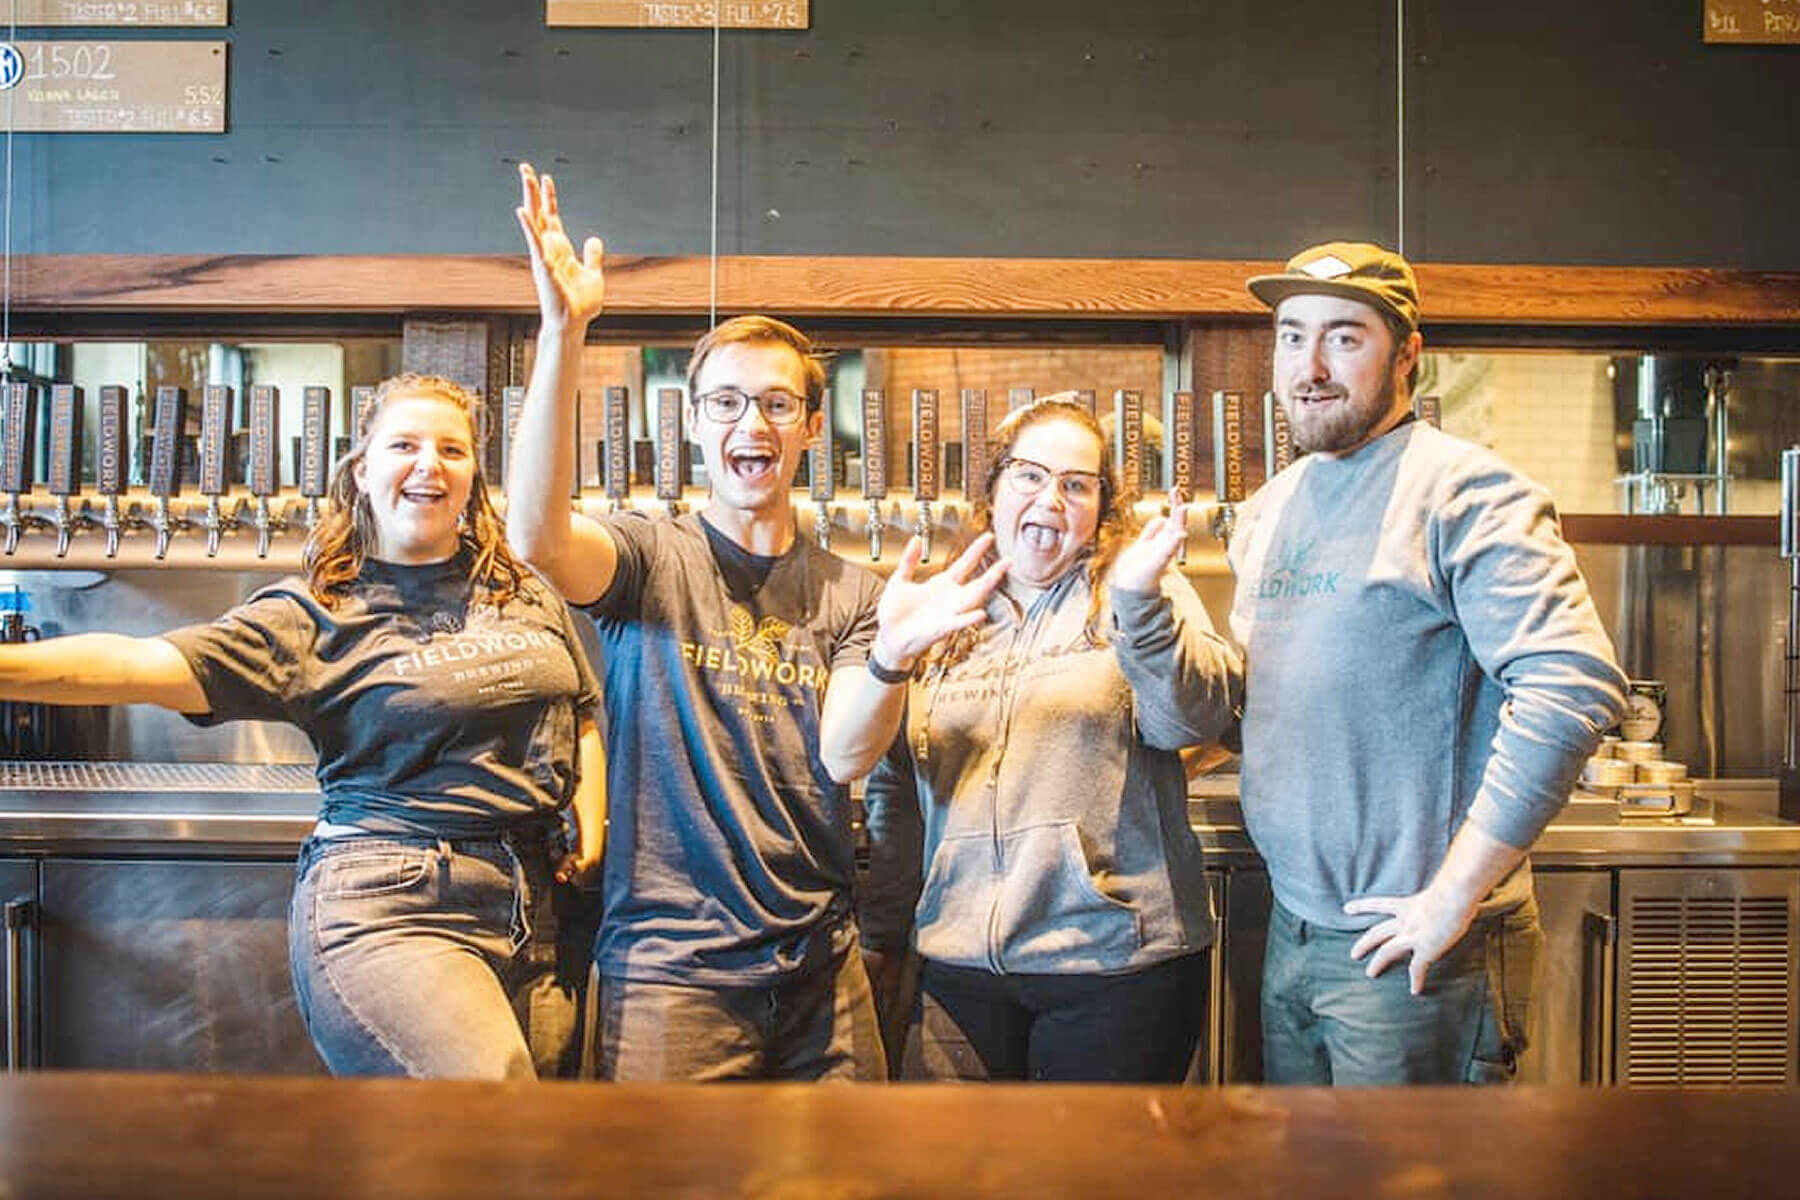 Bartenders show their joy in the taproom at Fieldwork Brewing Company in Corte Madera, California